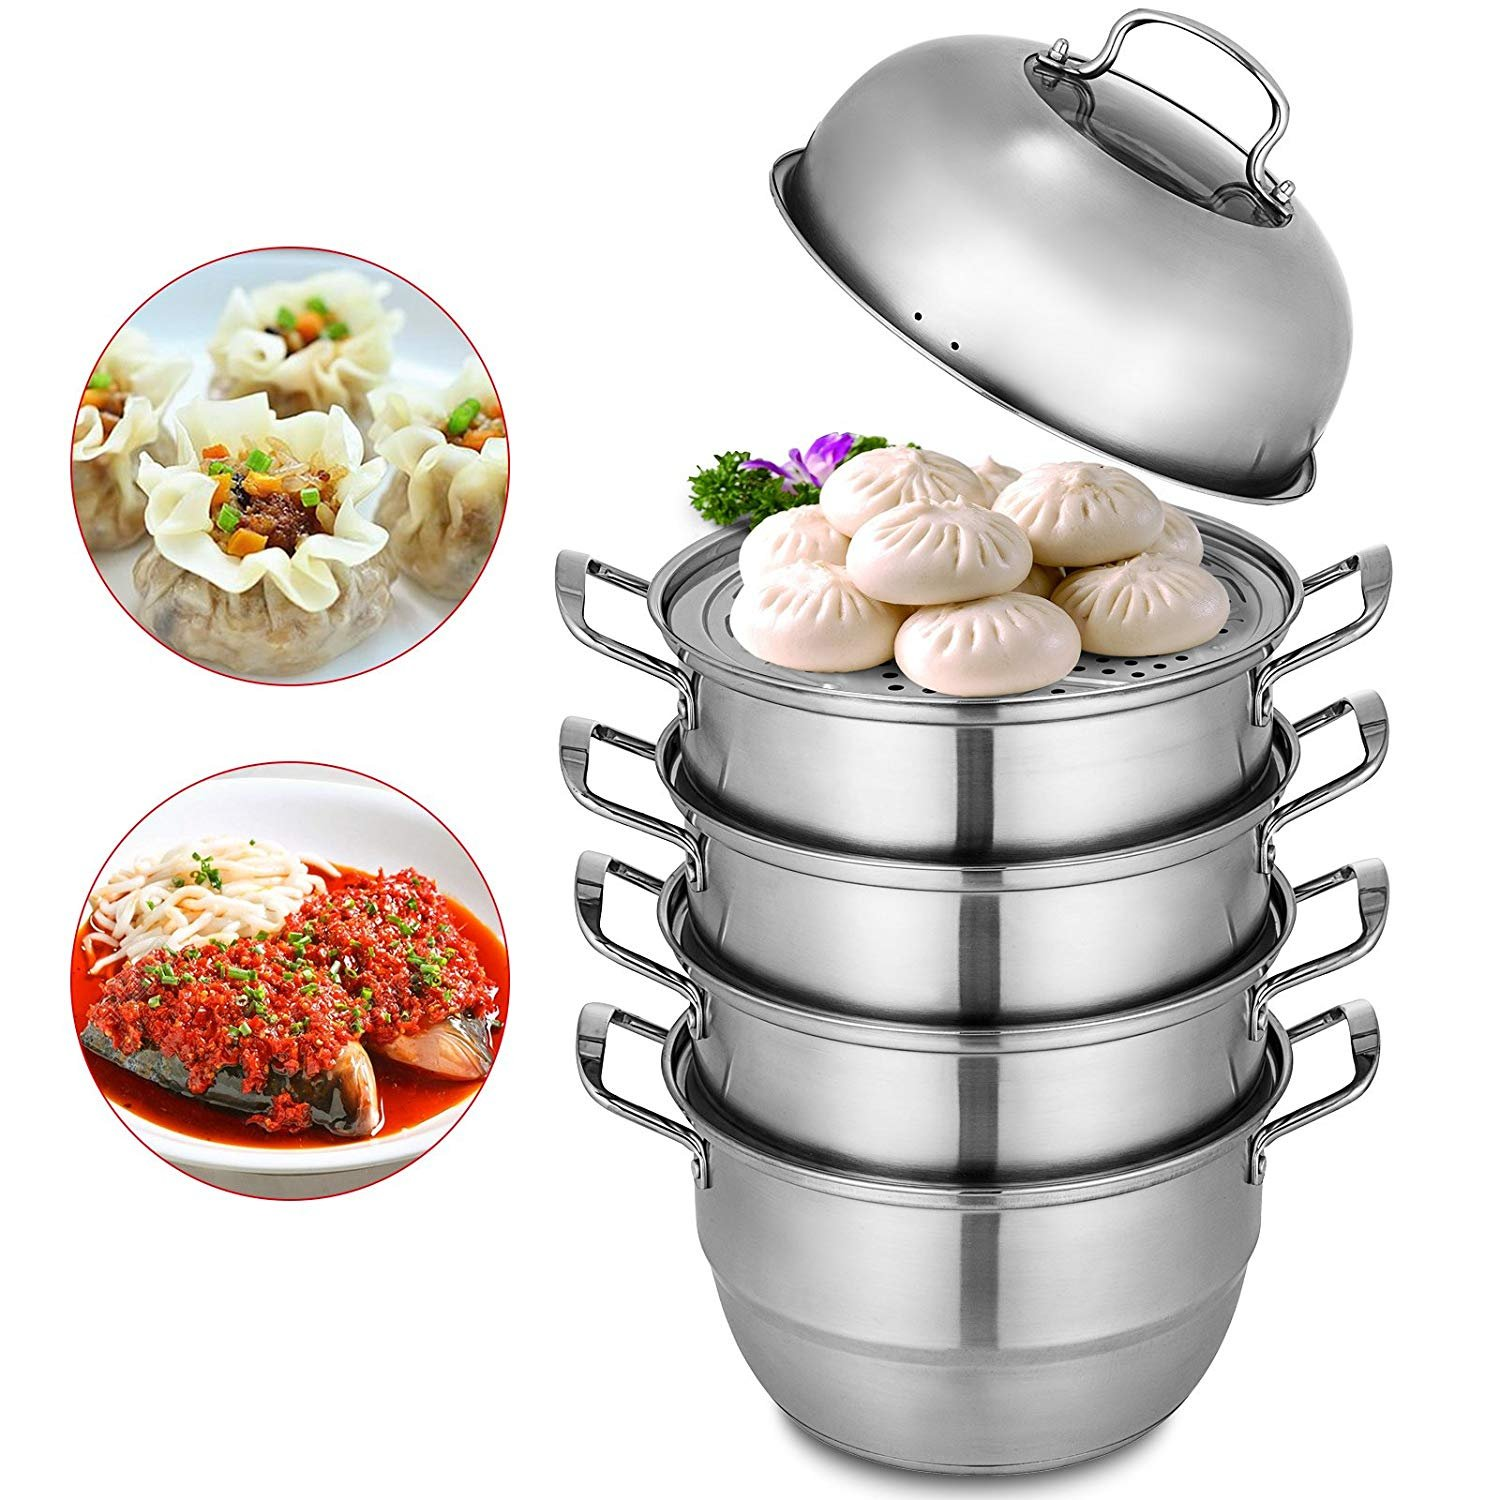 Hopopular Dumpling Steamer Stainless Steel 5 Titer Stainless Steel Steamer Work For Cooking 30cm/11.8inch Food Steamer Pot with Gas Electric Grill Stove Top (Dia 28cm)